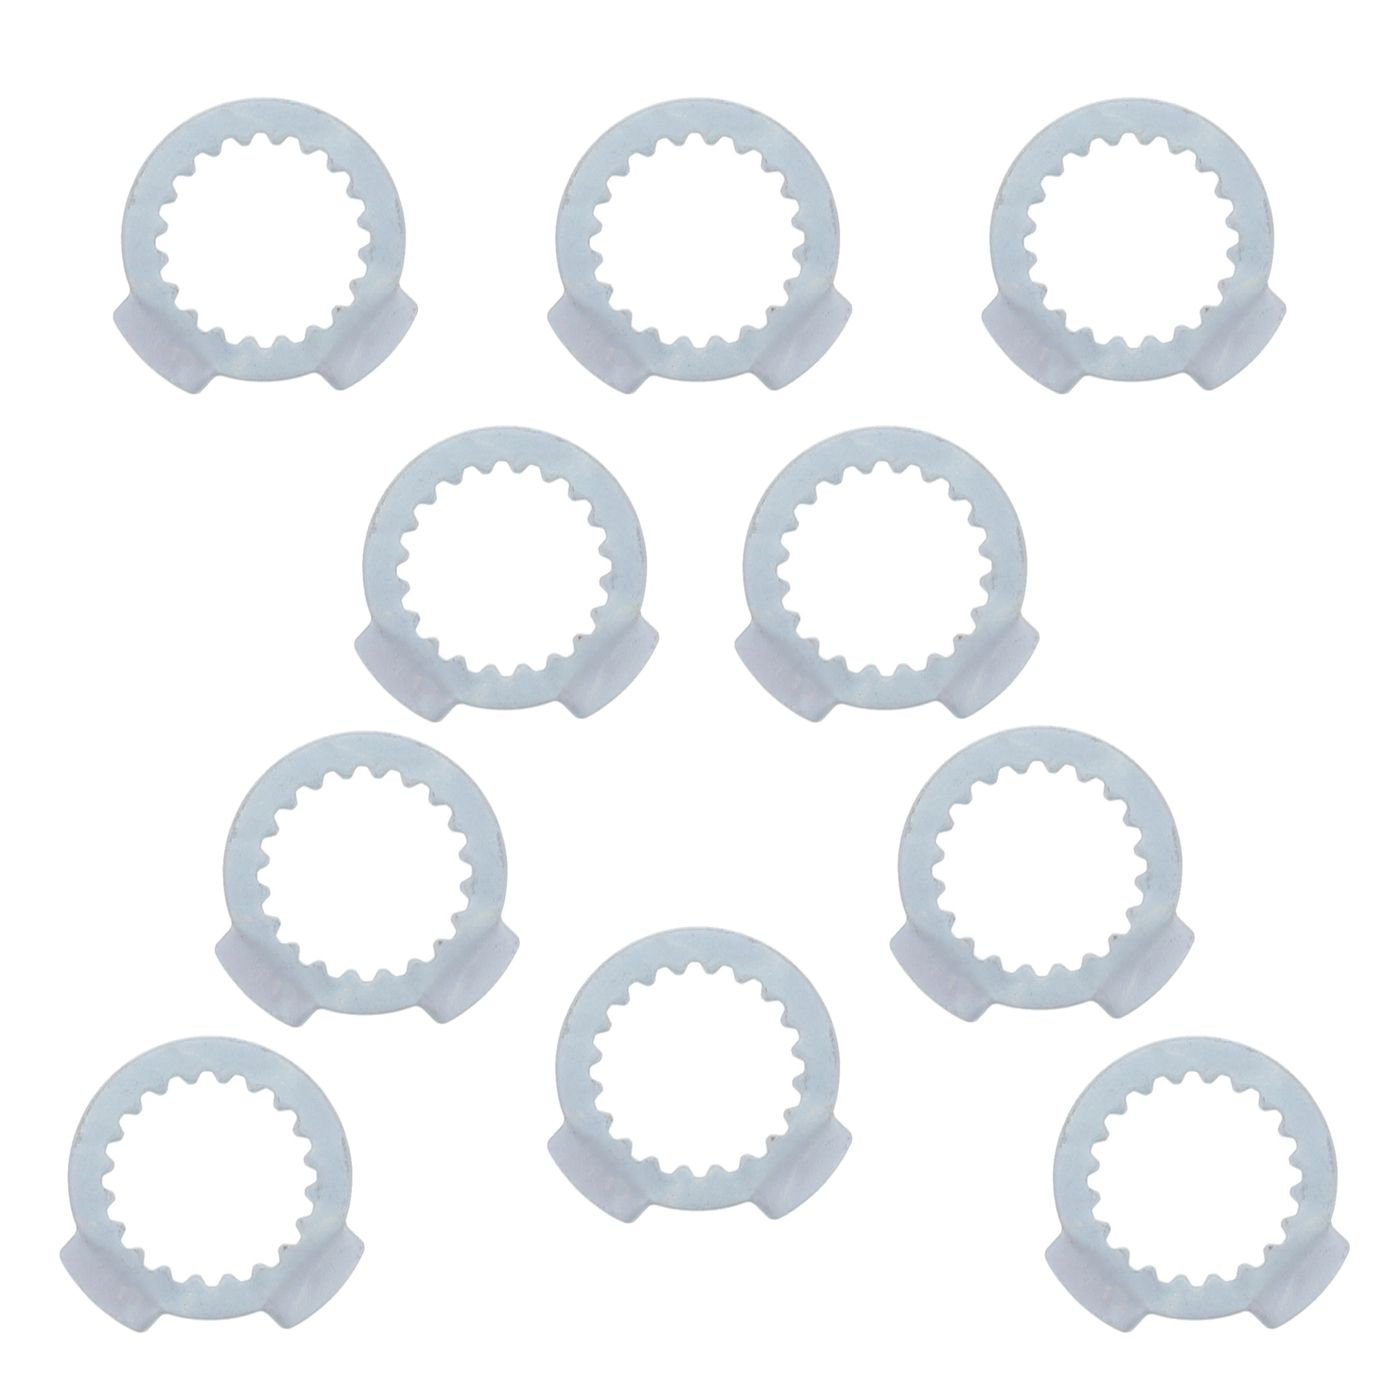 Wrp Front Sprocket Retainers - WRP256004 image